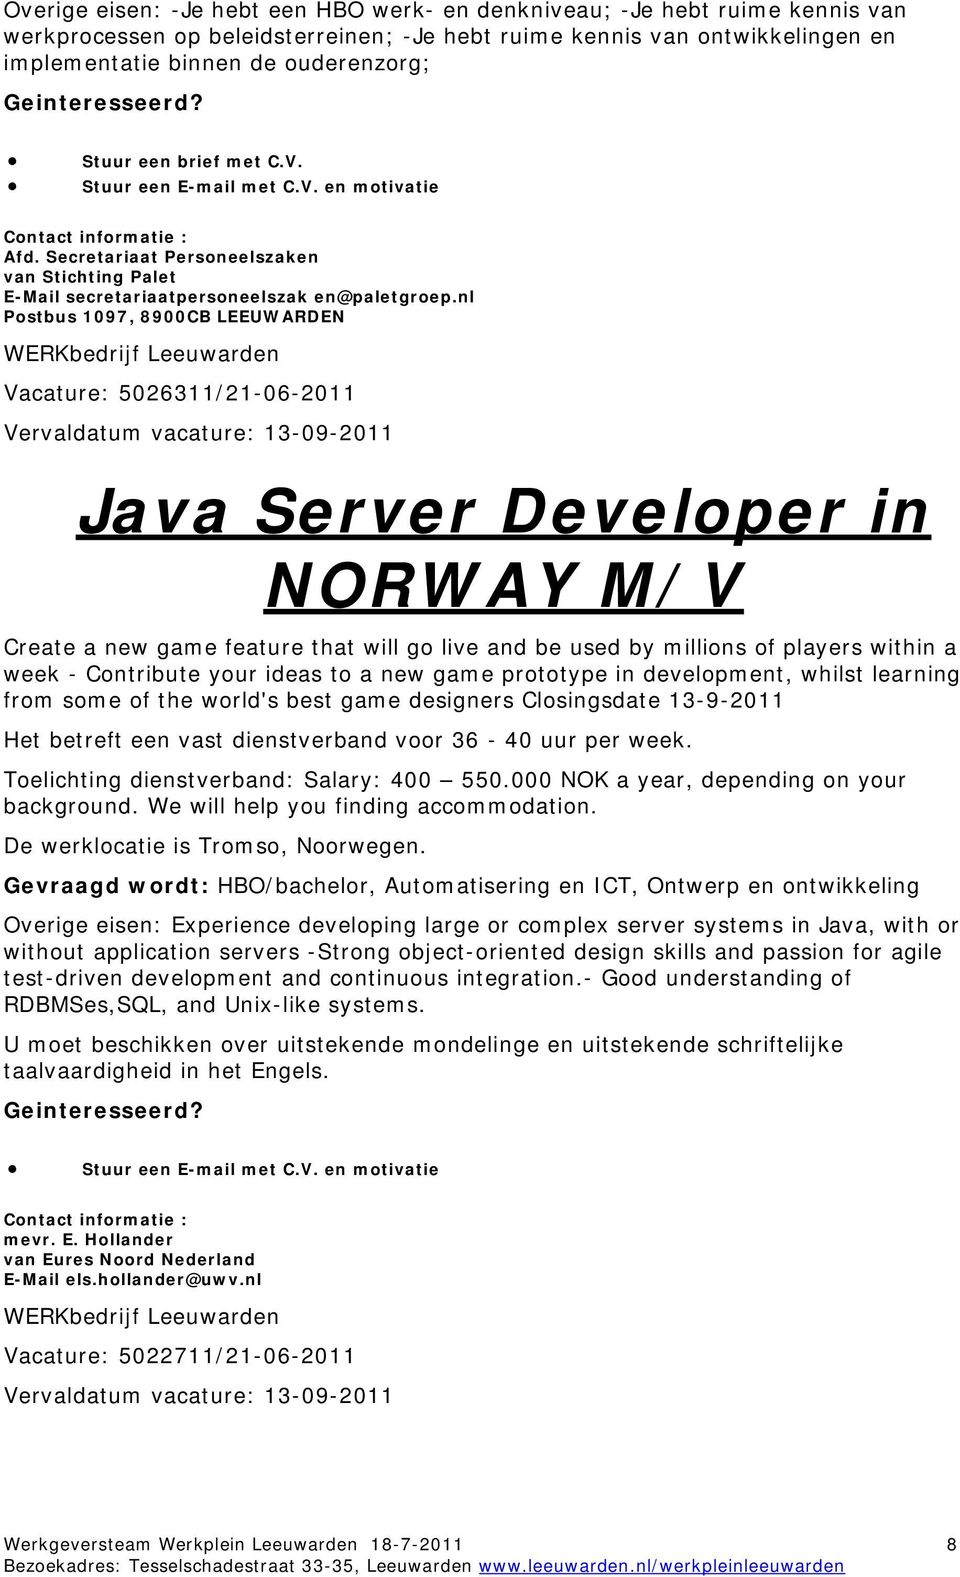 nl Postbus 1097, 8900CB LEEUWARDEN Vacature: 5026311/21-06-2011 Vervaldatum vacature: 13-09-2011 Java Server Developer in NORWAY M/V Create a new game feature that will go live and be used by